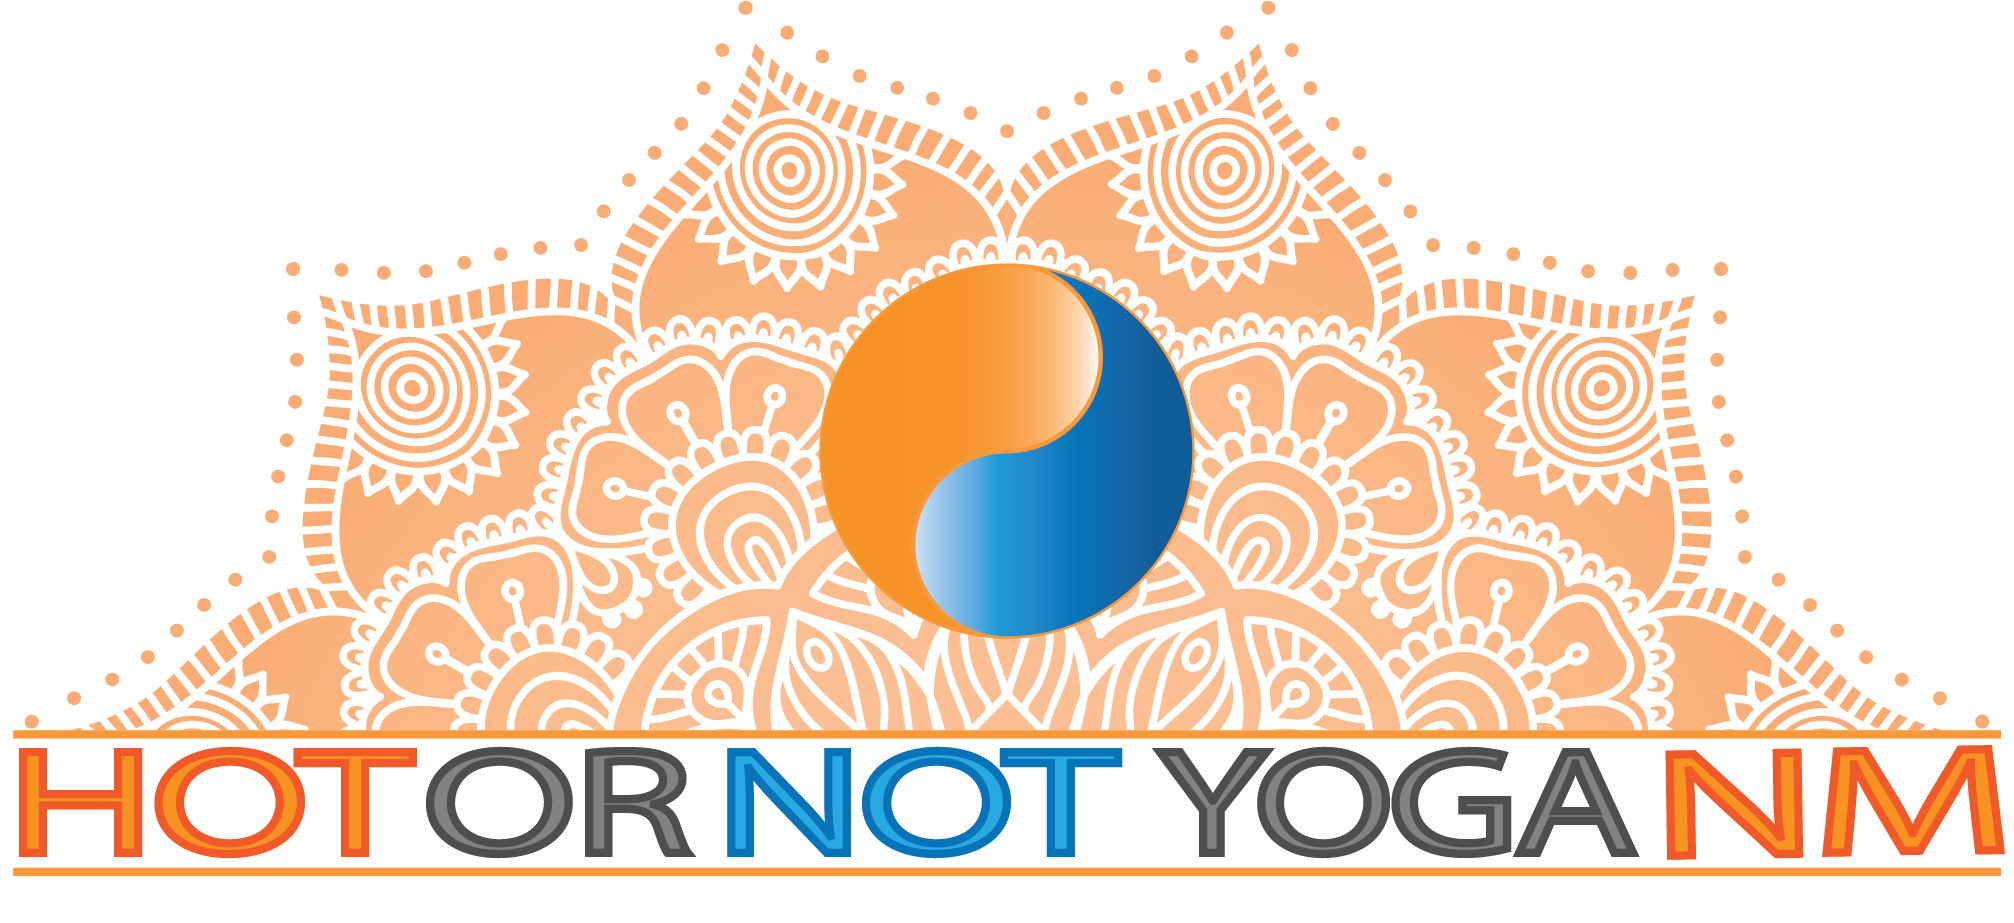 Hot or Not Yoga NM